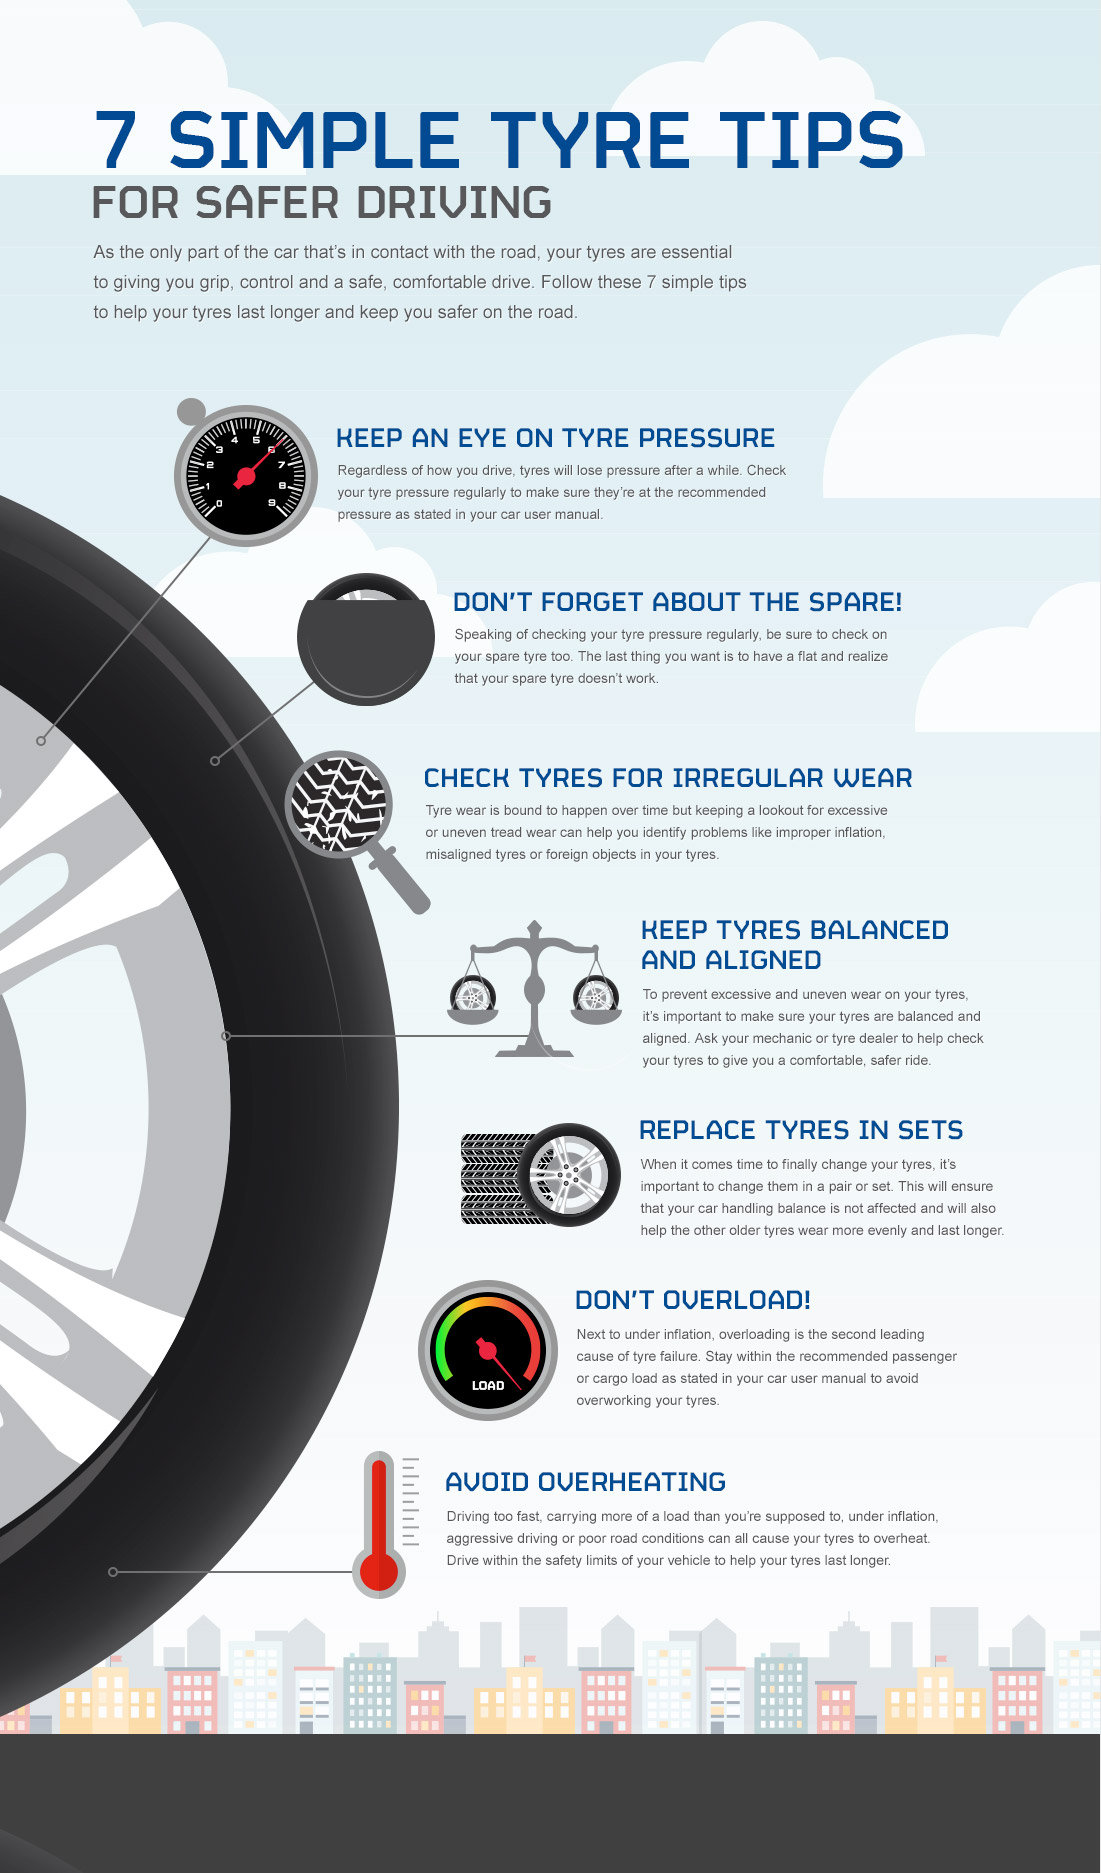 7 Simple Tyre Tips for Safer Driving